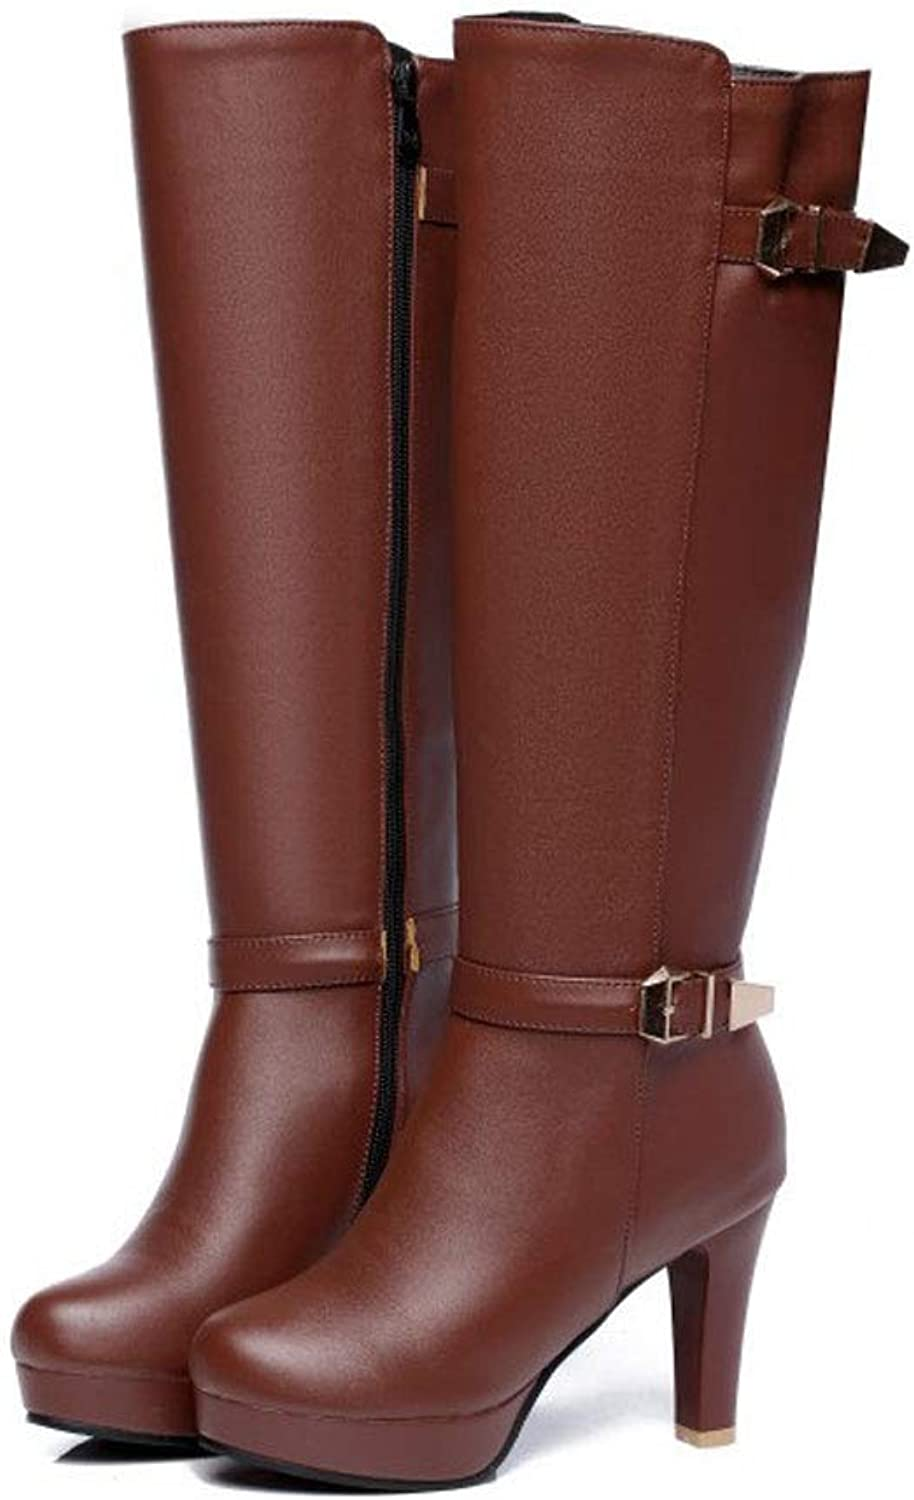 Over The Knee Boots High-Heeled Boots, Large Size Pointed Side Zipper Boots Waterproof Platform Knee Boots Thick with Non-Slip Comfortable Warm Belt Buckle Long Boots